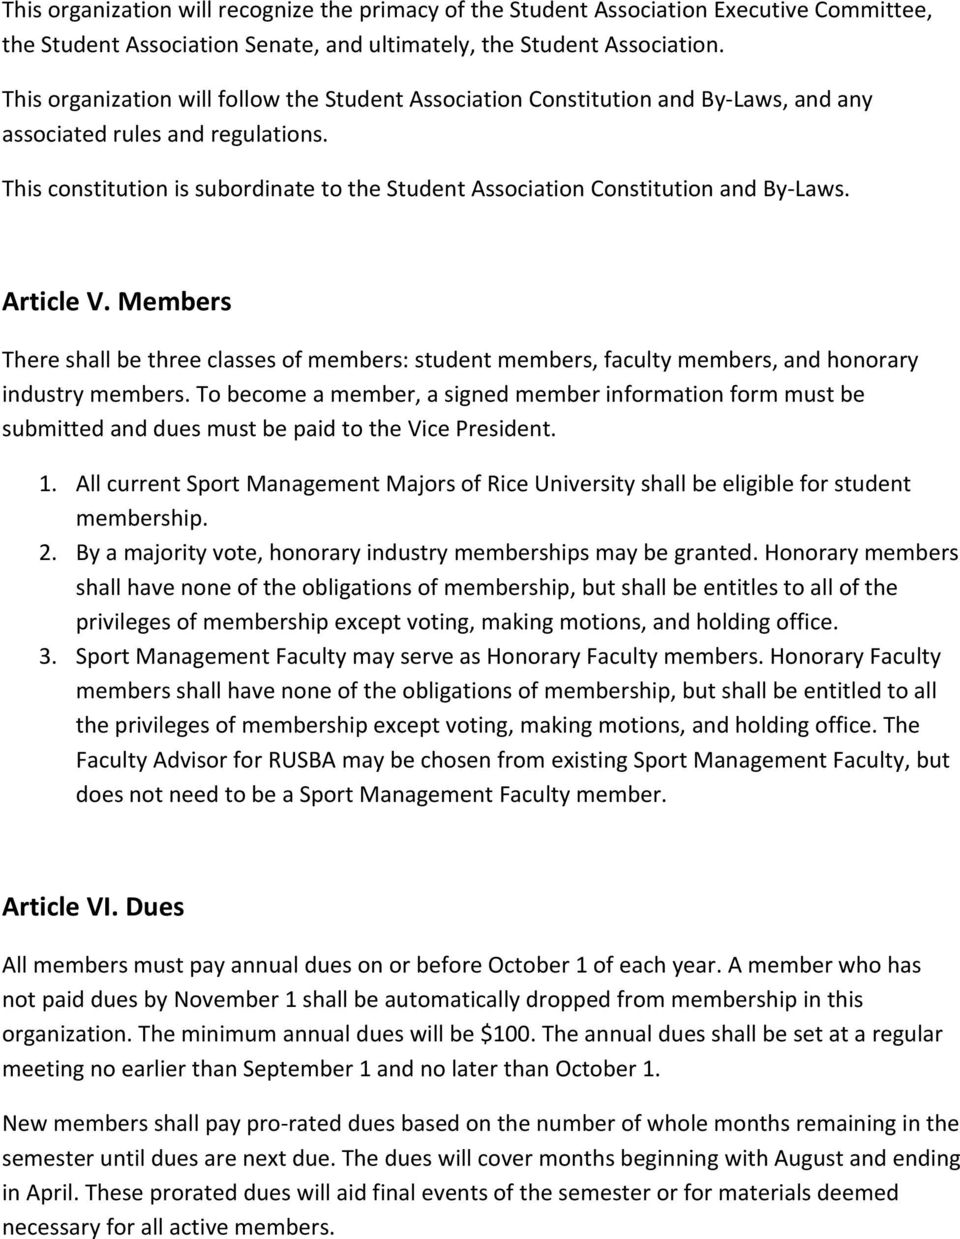 This constitution is subordinate to the Student Association Constitution and By Laws. Article V.